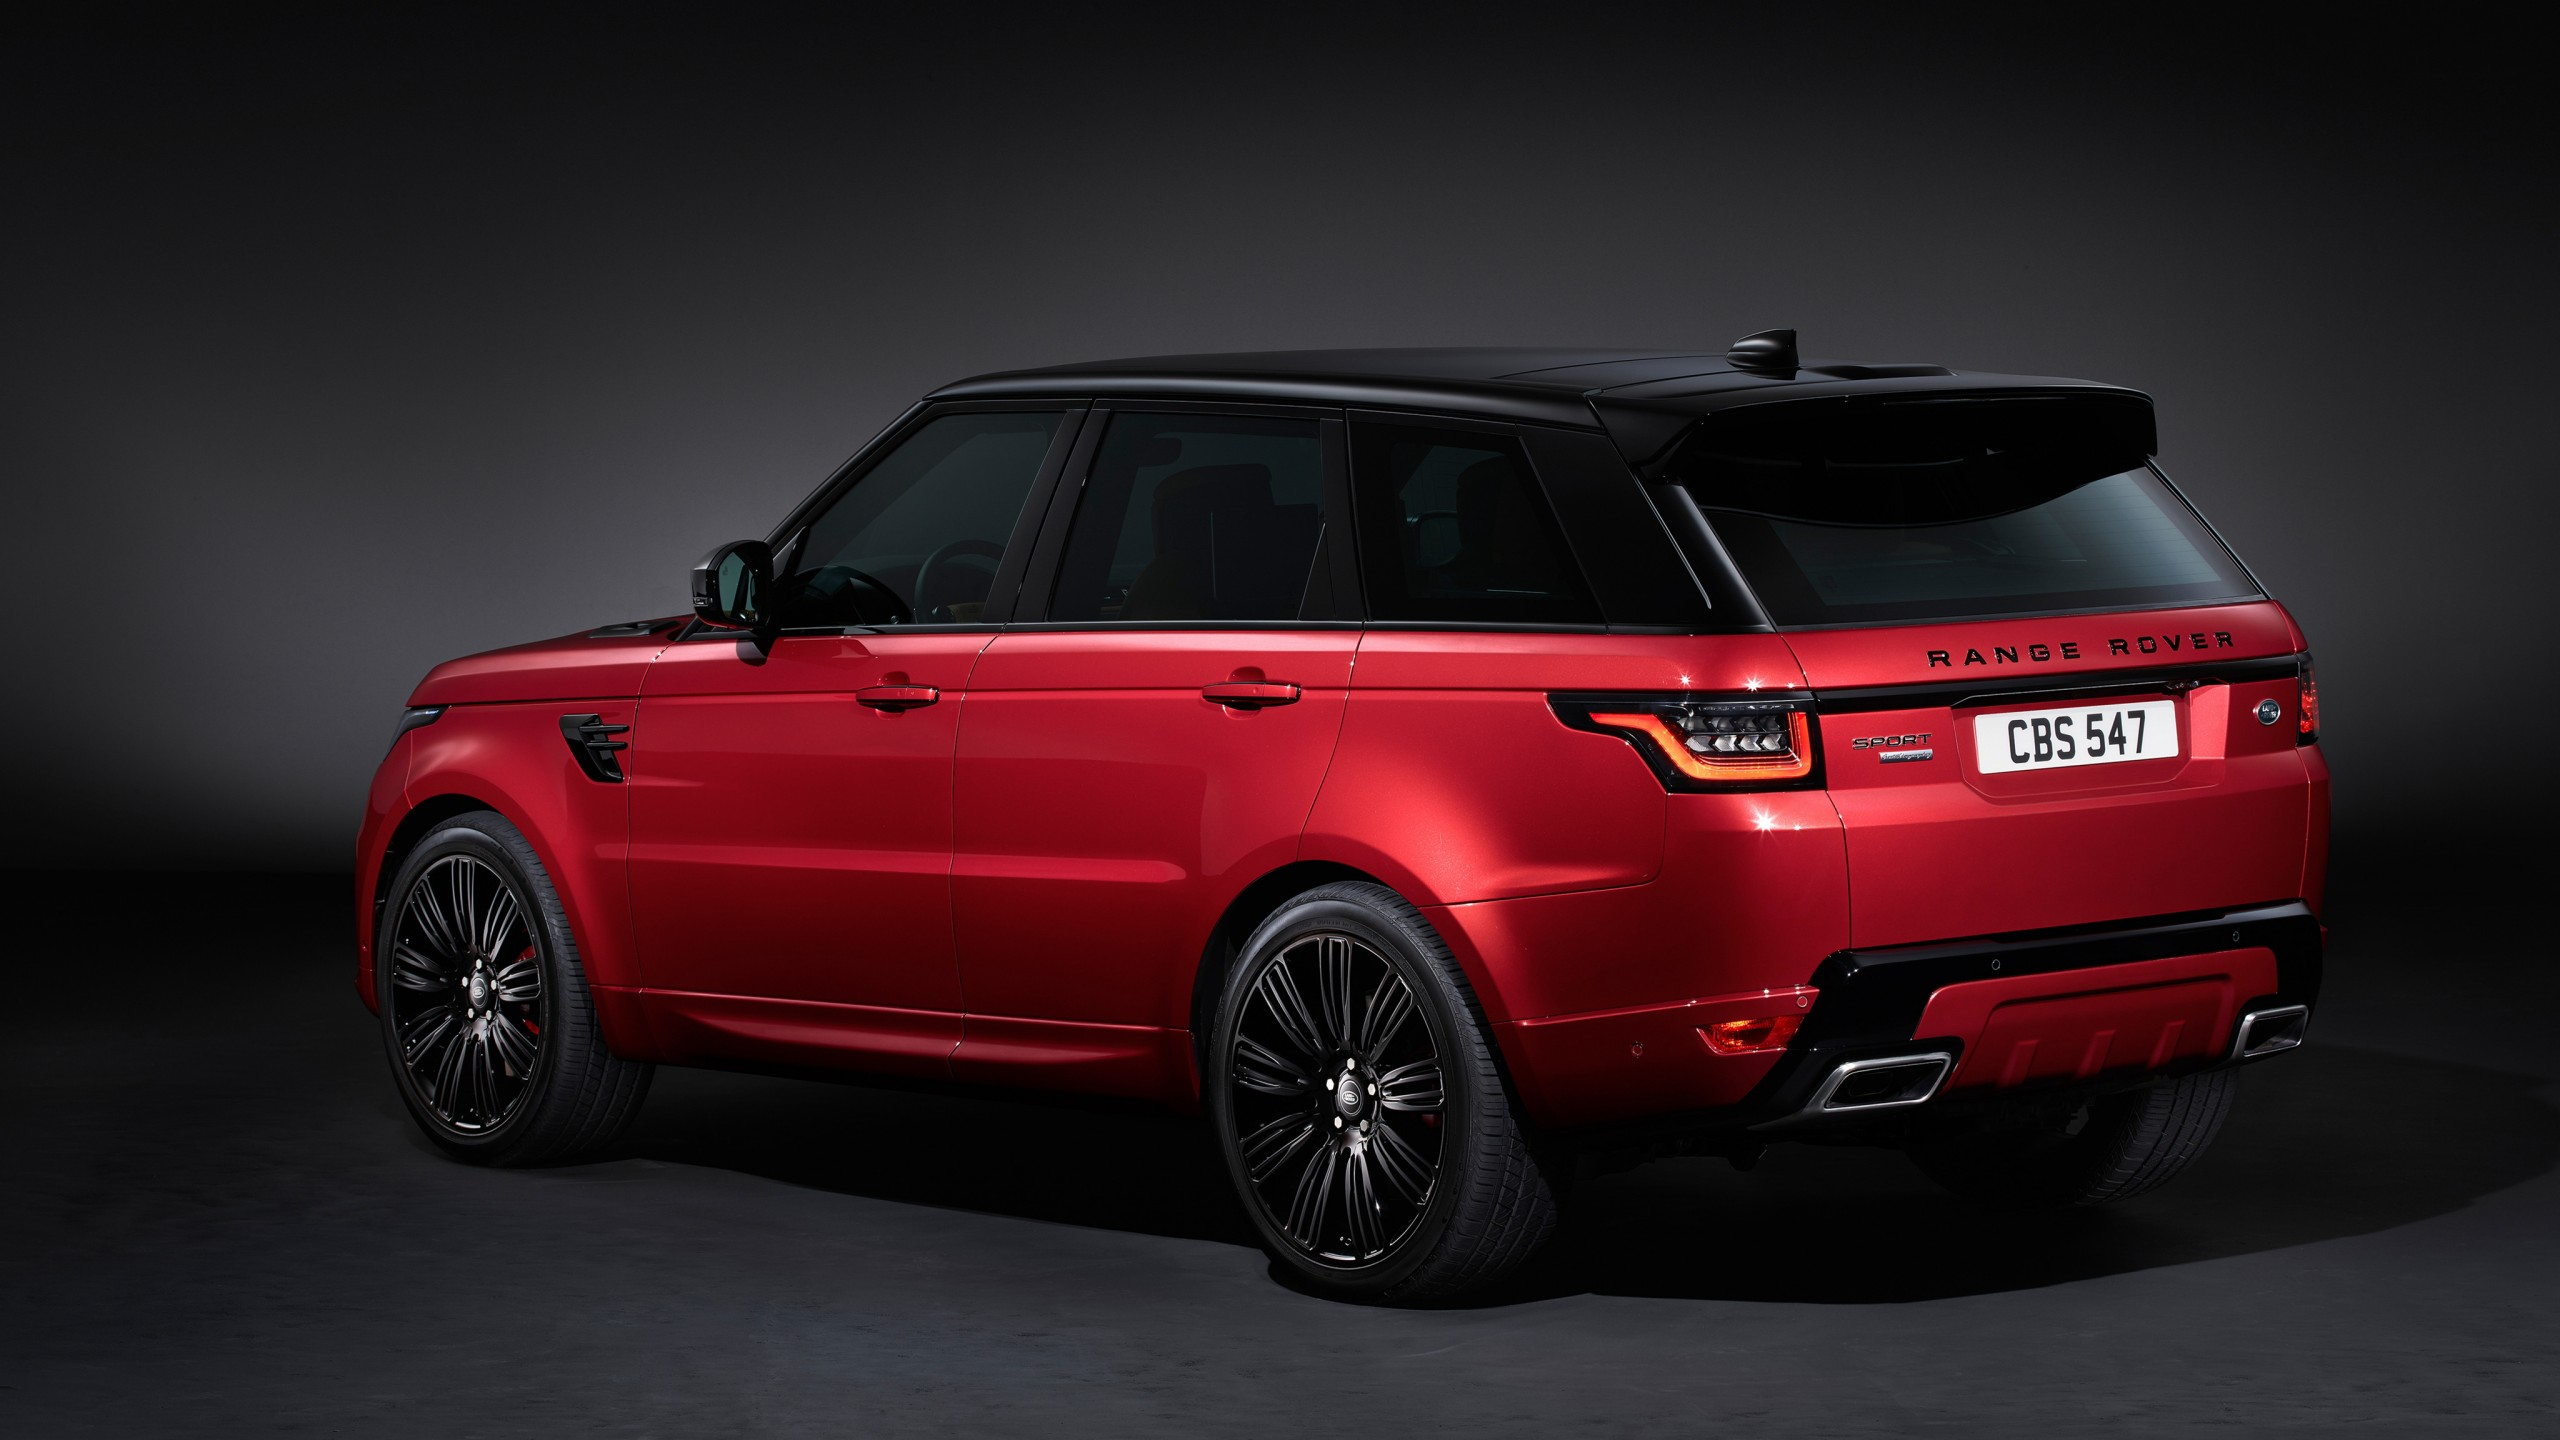 Range Rover Autobiography 2010 >> 2017 Range Rover Sport Autobiography 4K 2 Wallpaper | HD Car Wallpapers | ID #8766